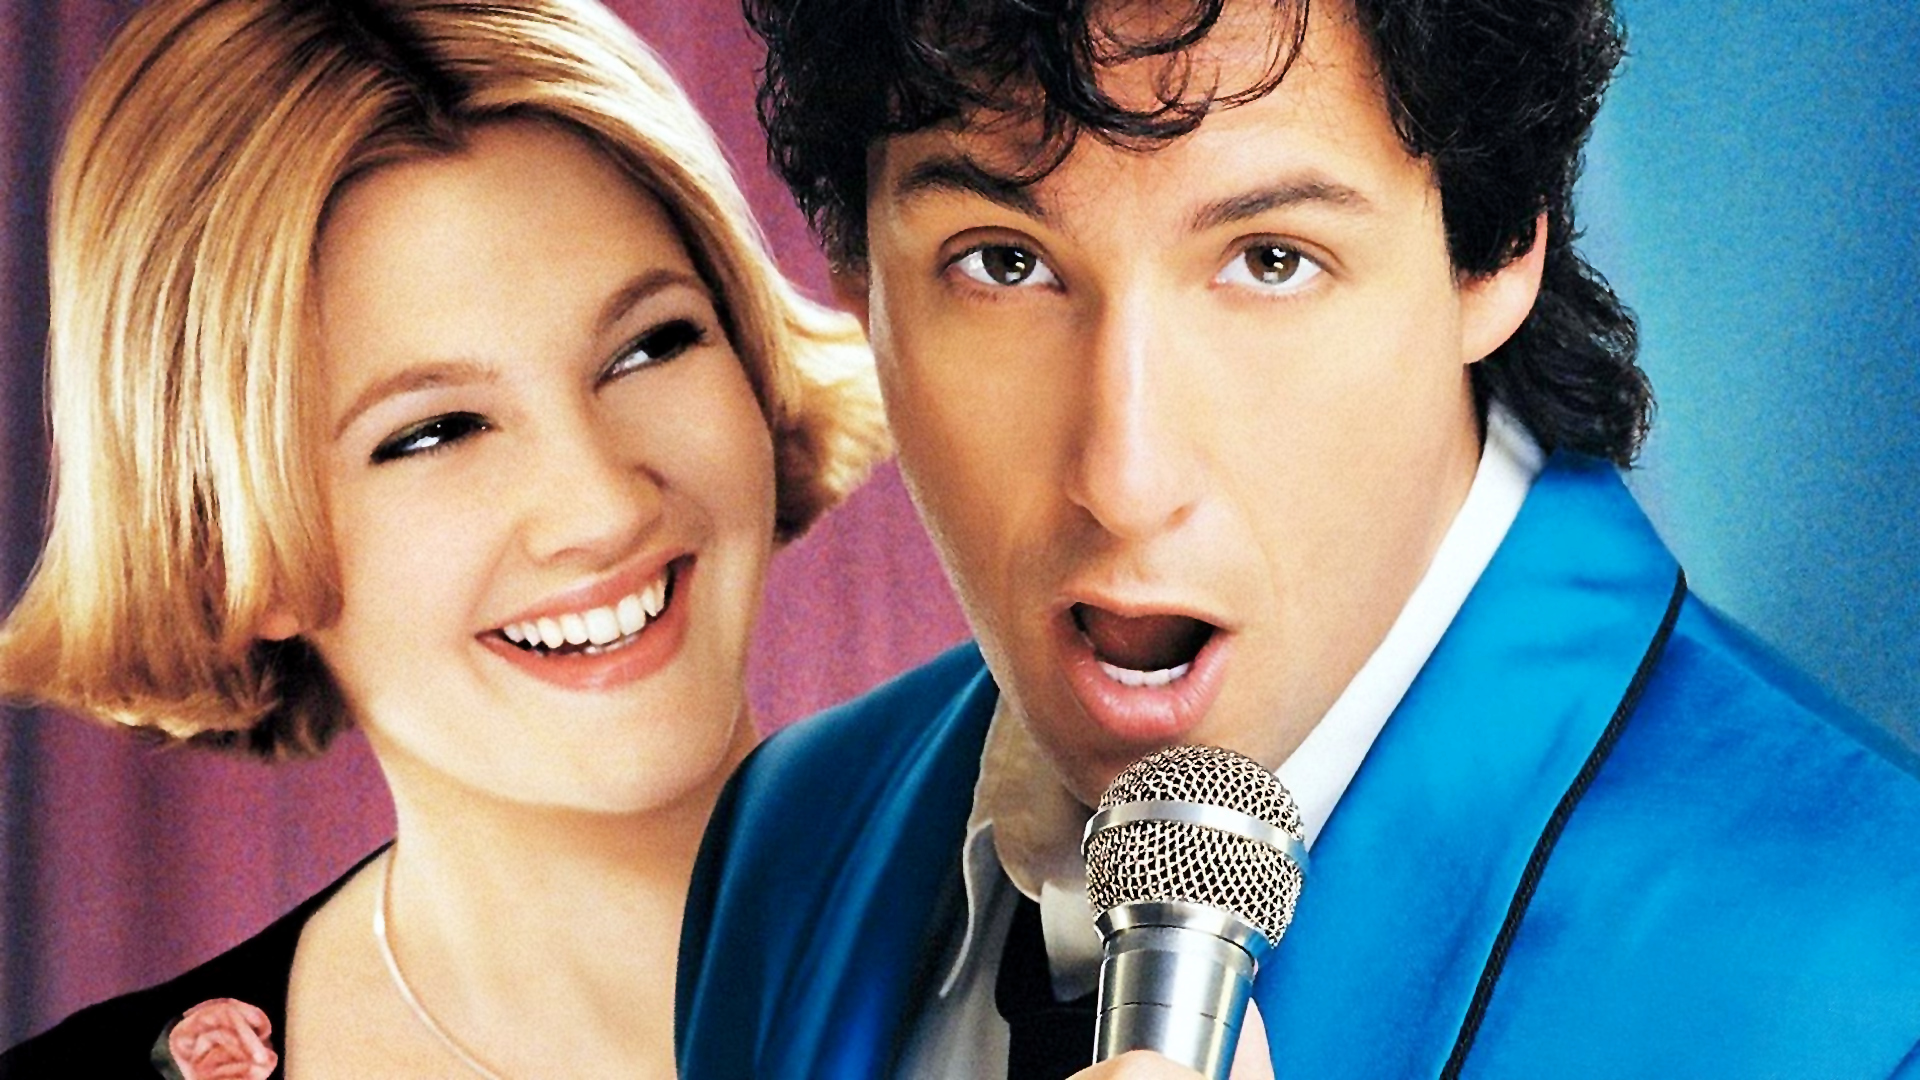 How Adam Sandler's The Wedding Singer Became the Ultimate Love